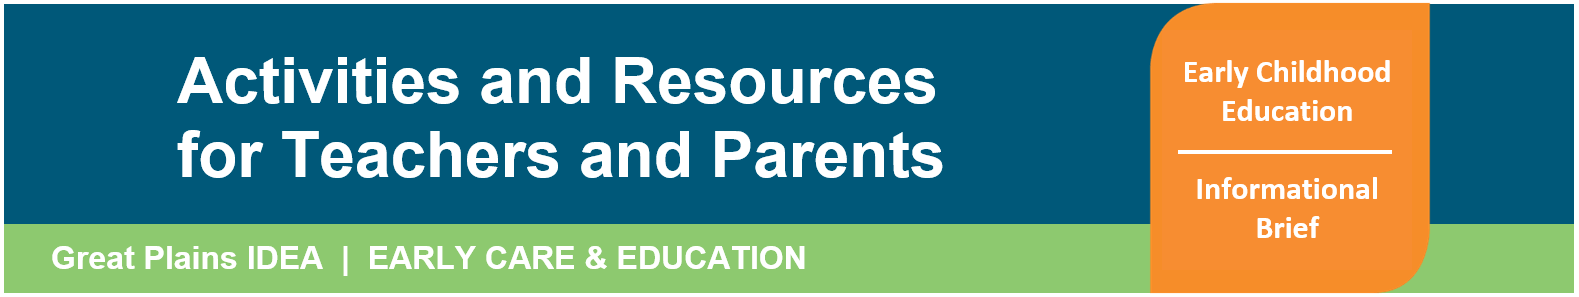 Header Activities and Resources for Teachers and Parents of Young Children